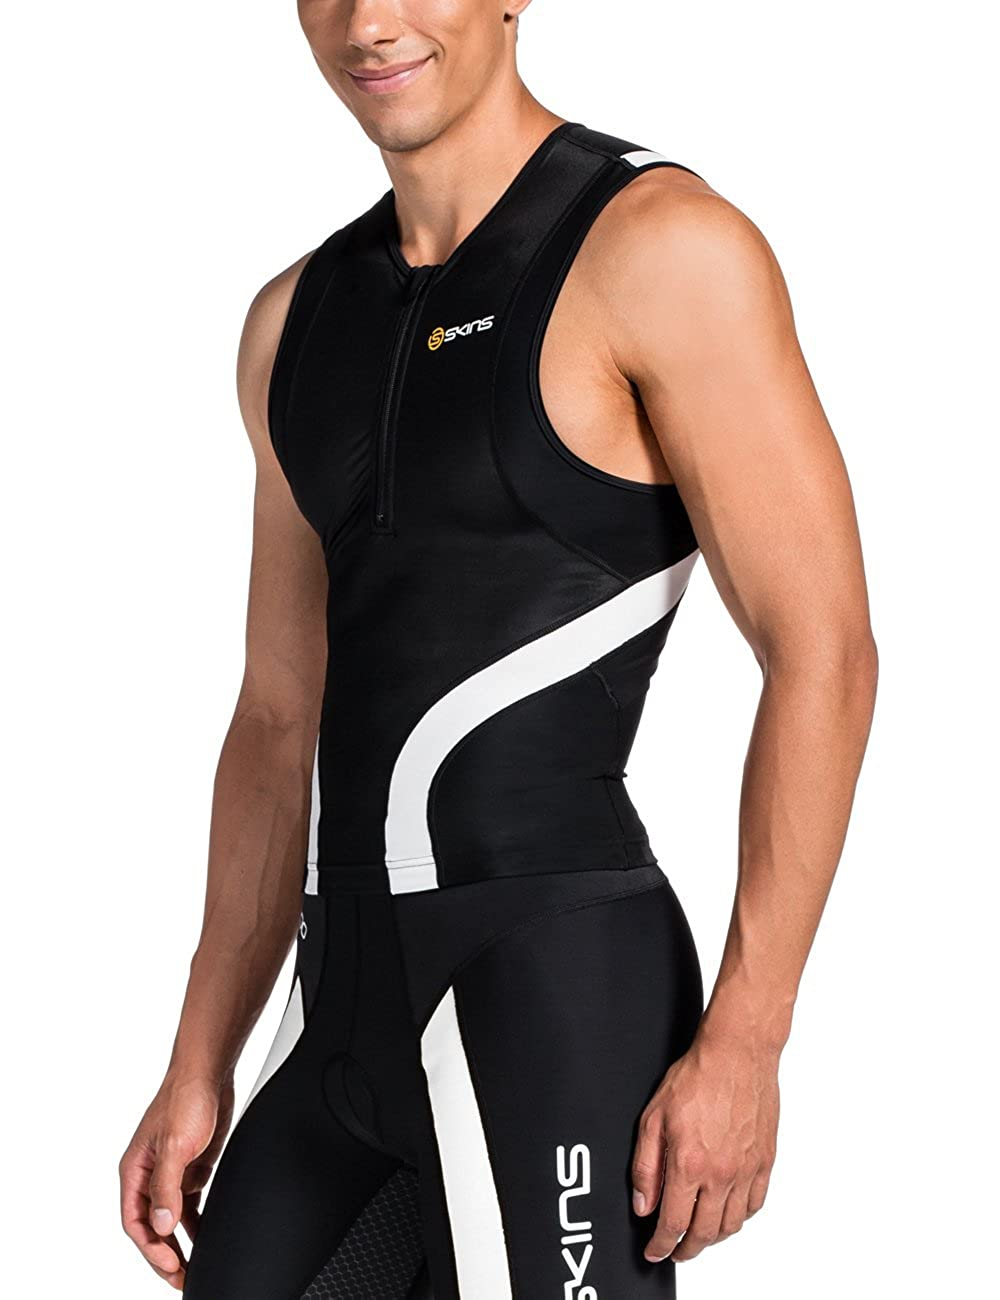 Skins Triathlon Sleeveless Half-Zip Compression Top